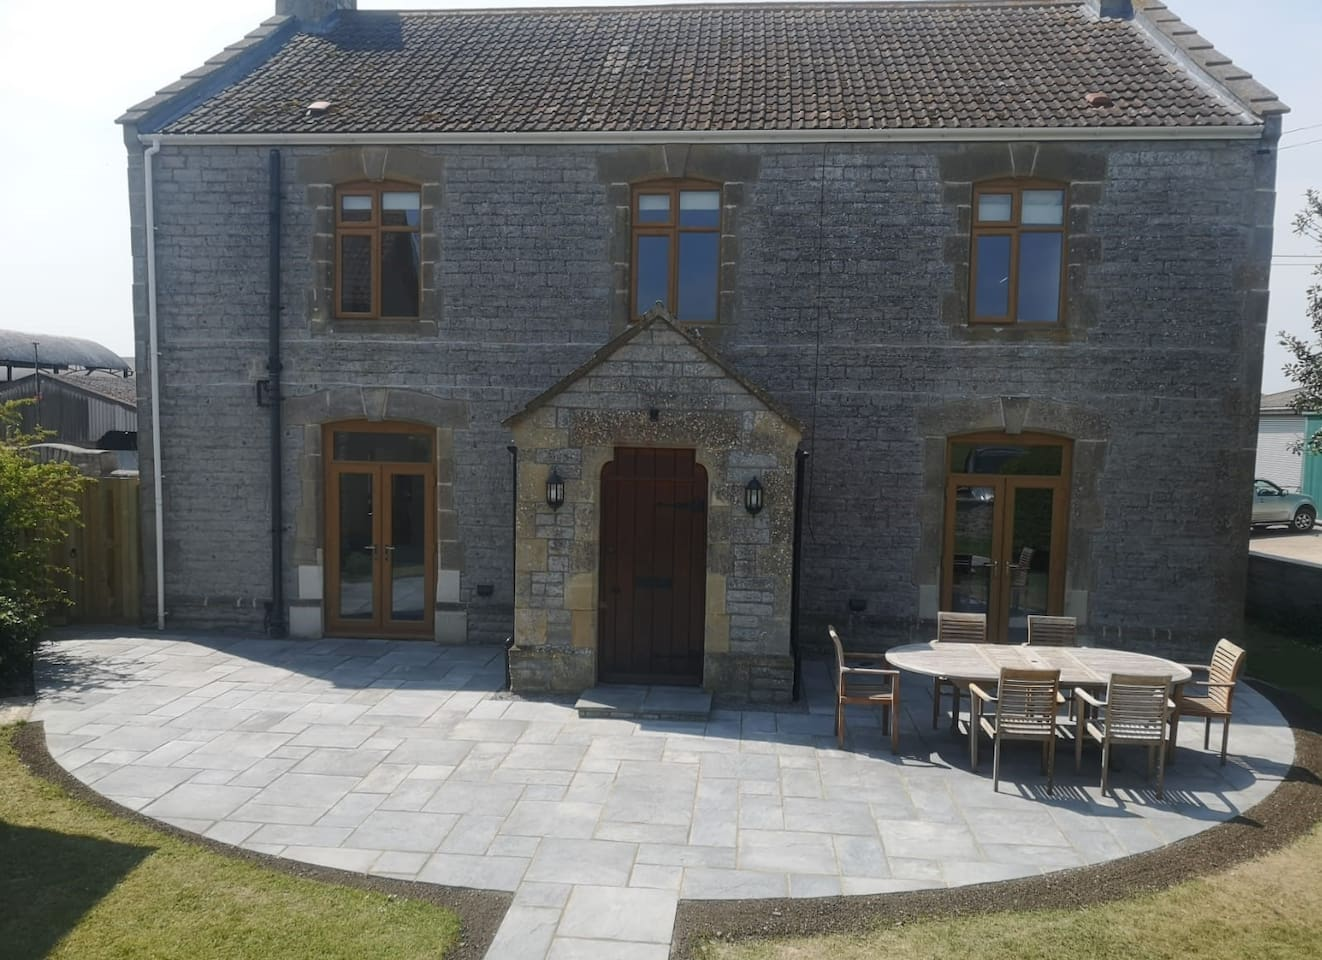 The newly finished patio to the front of The Farmhouse overlooks the tennis court. Both reception rooms have patio doors opening out onto the large patio area, offering the ideal space for indoor/outdoor entertaining.